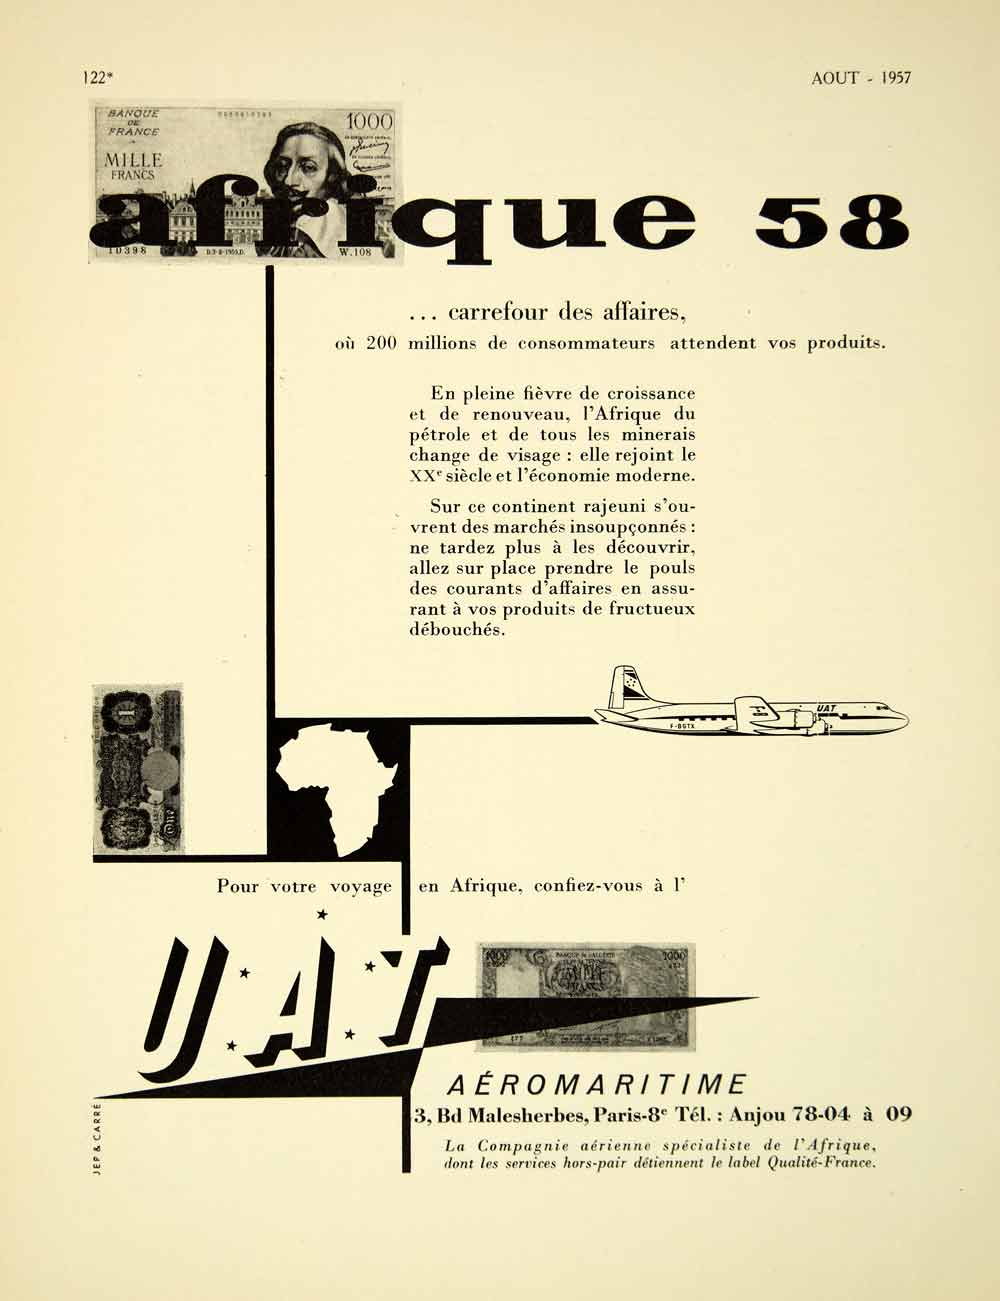 1957 Ad French Advertisement UAT Aeromaritime France Jep Carre Africa VENA6